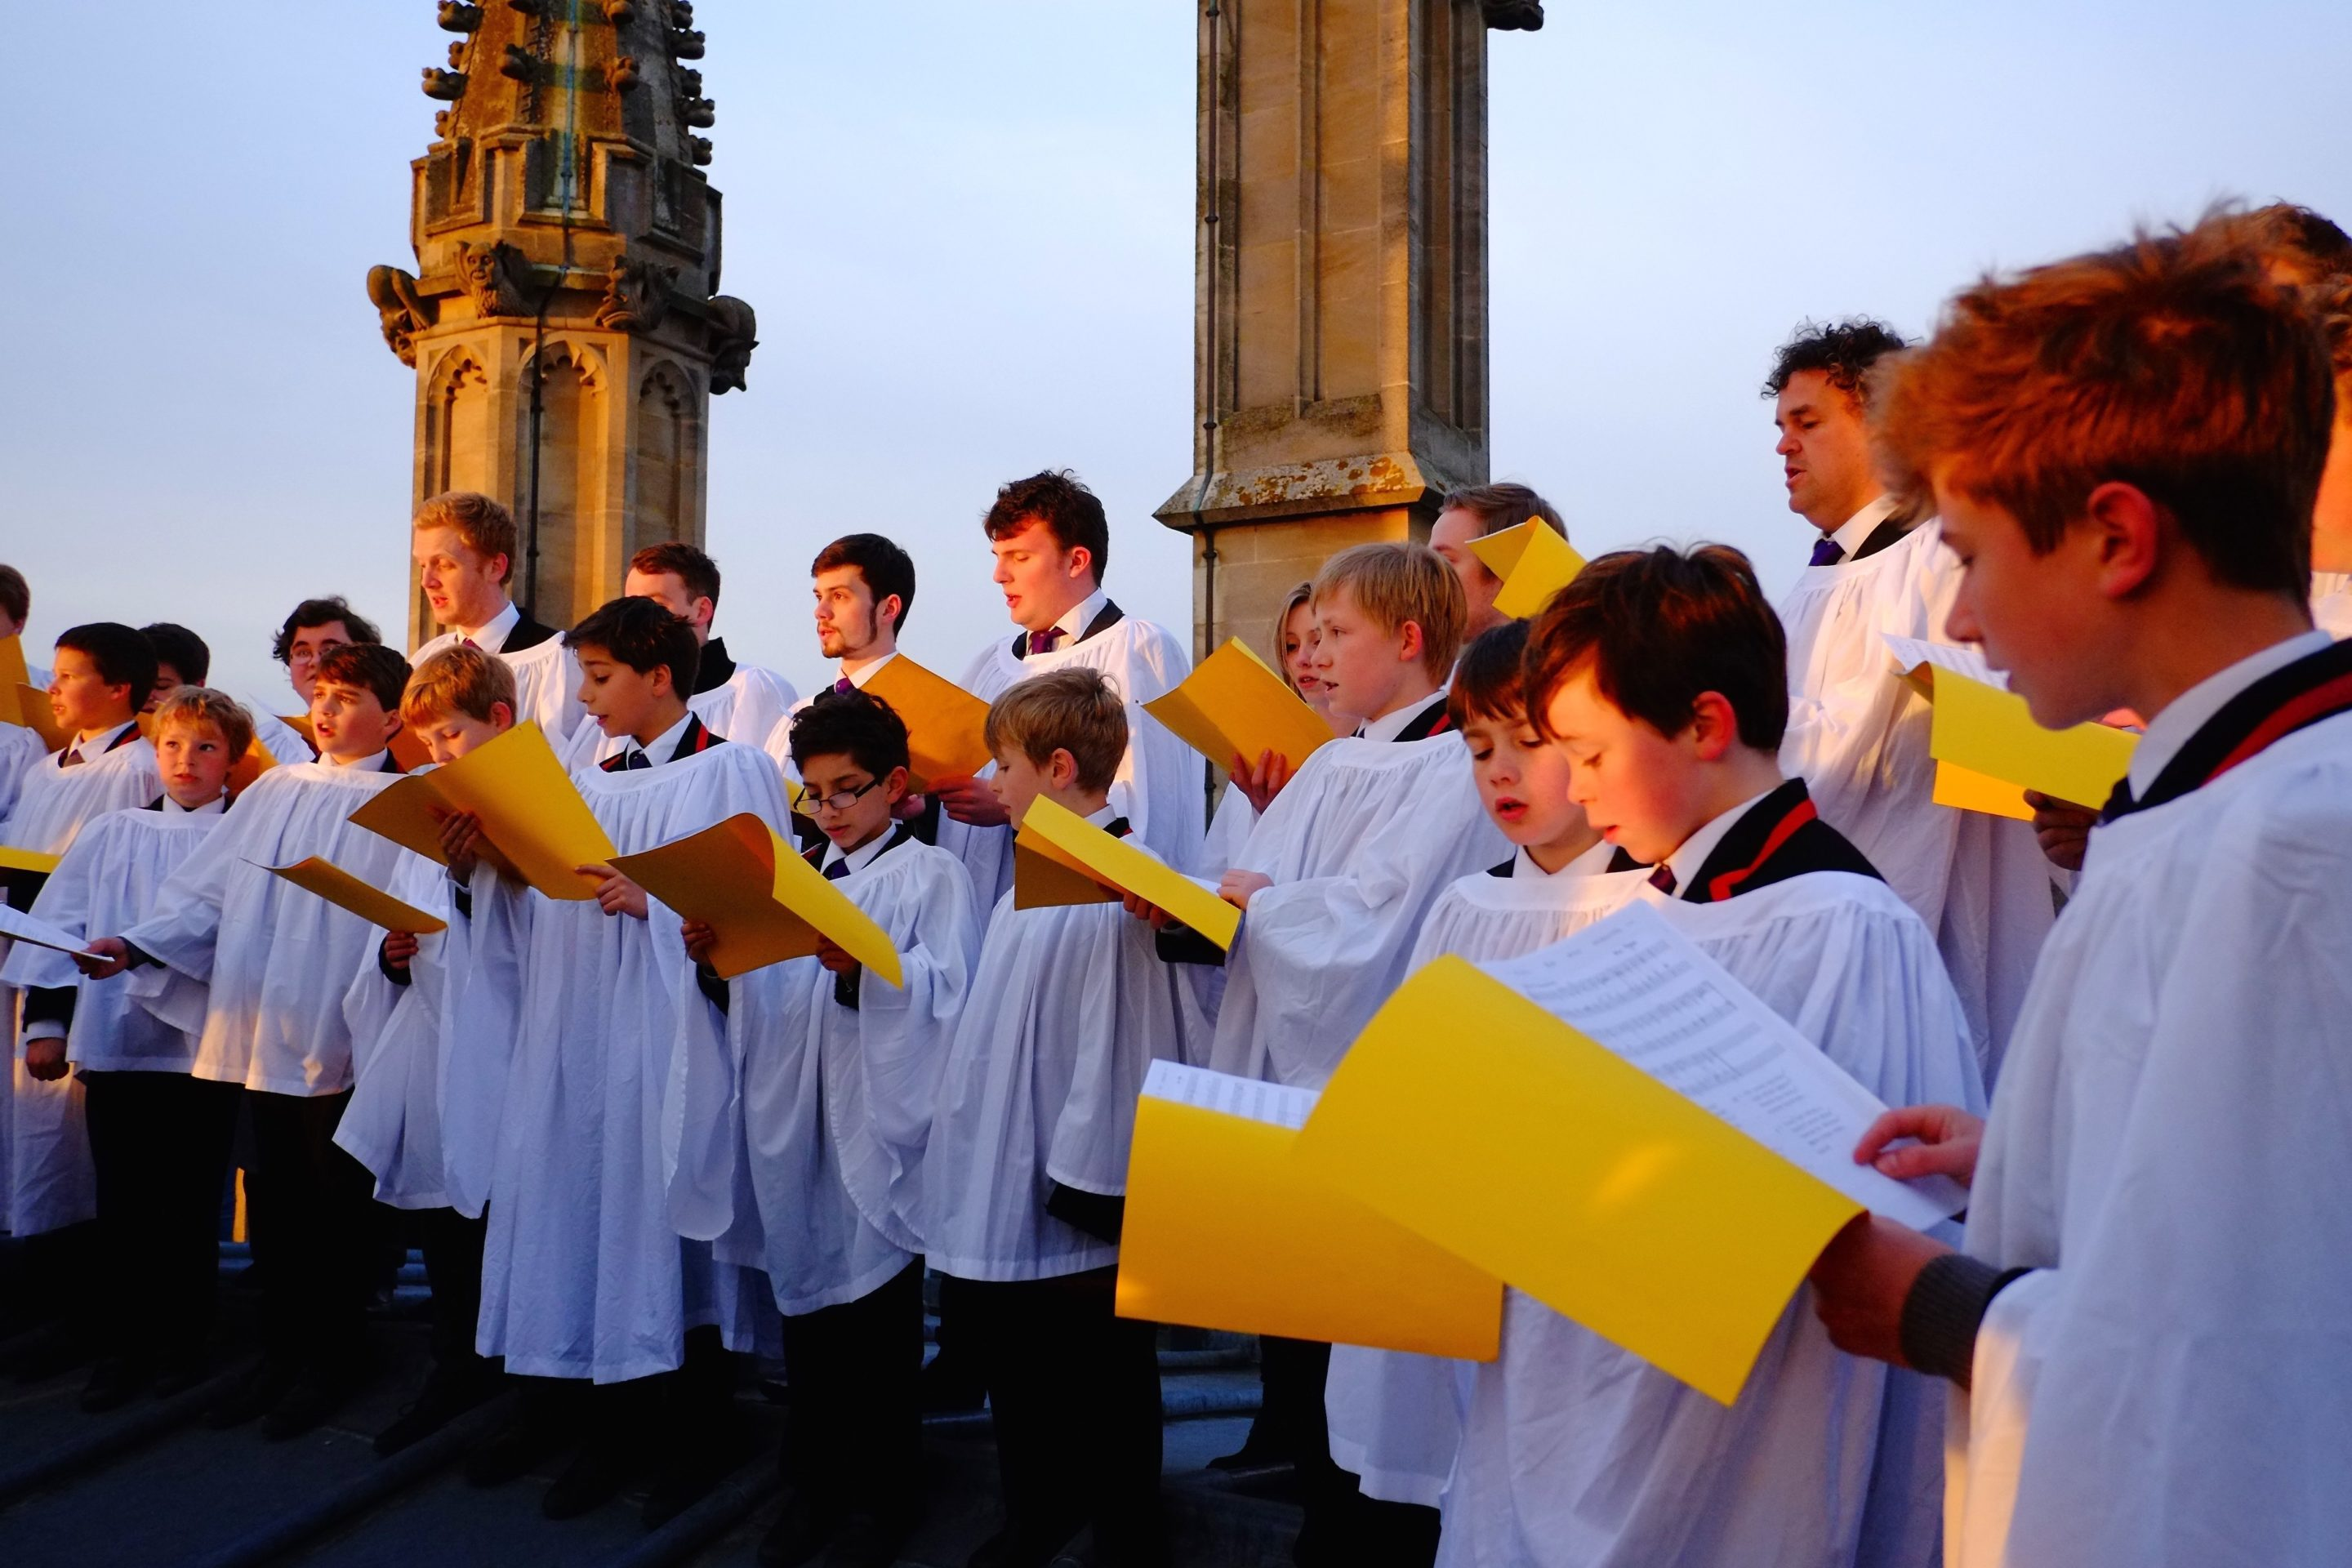 Magdalen College School Choristers singing on May Morning